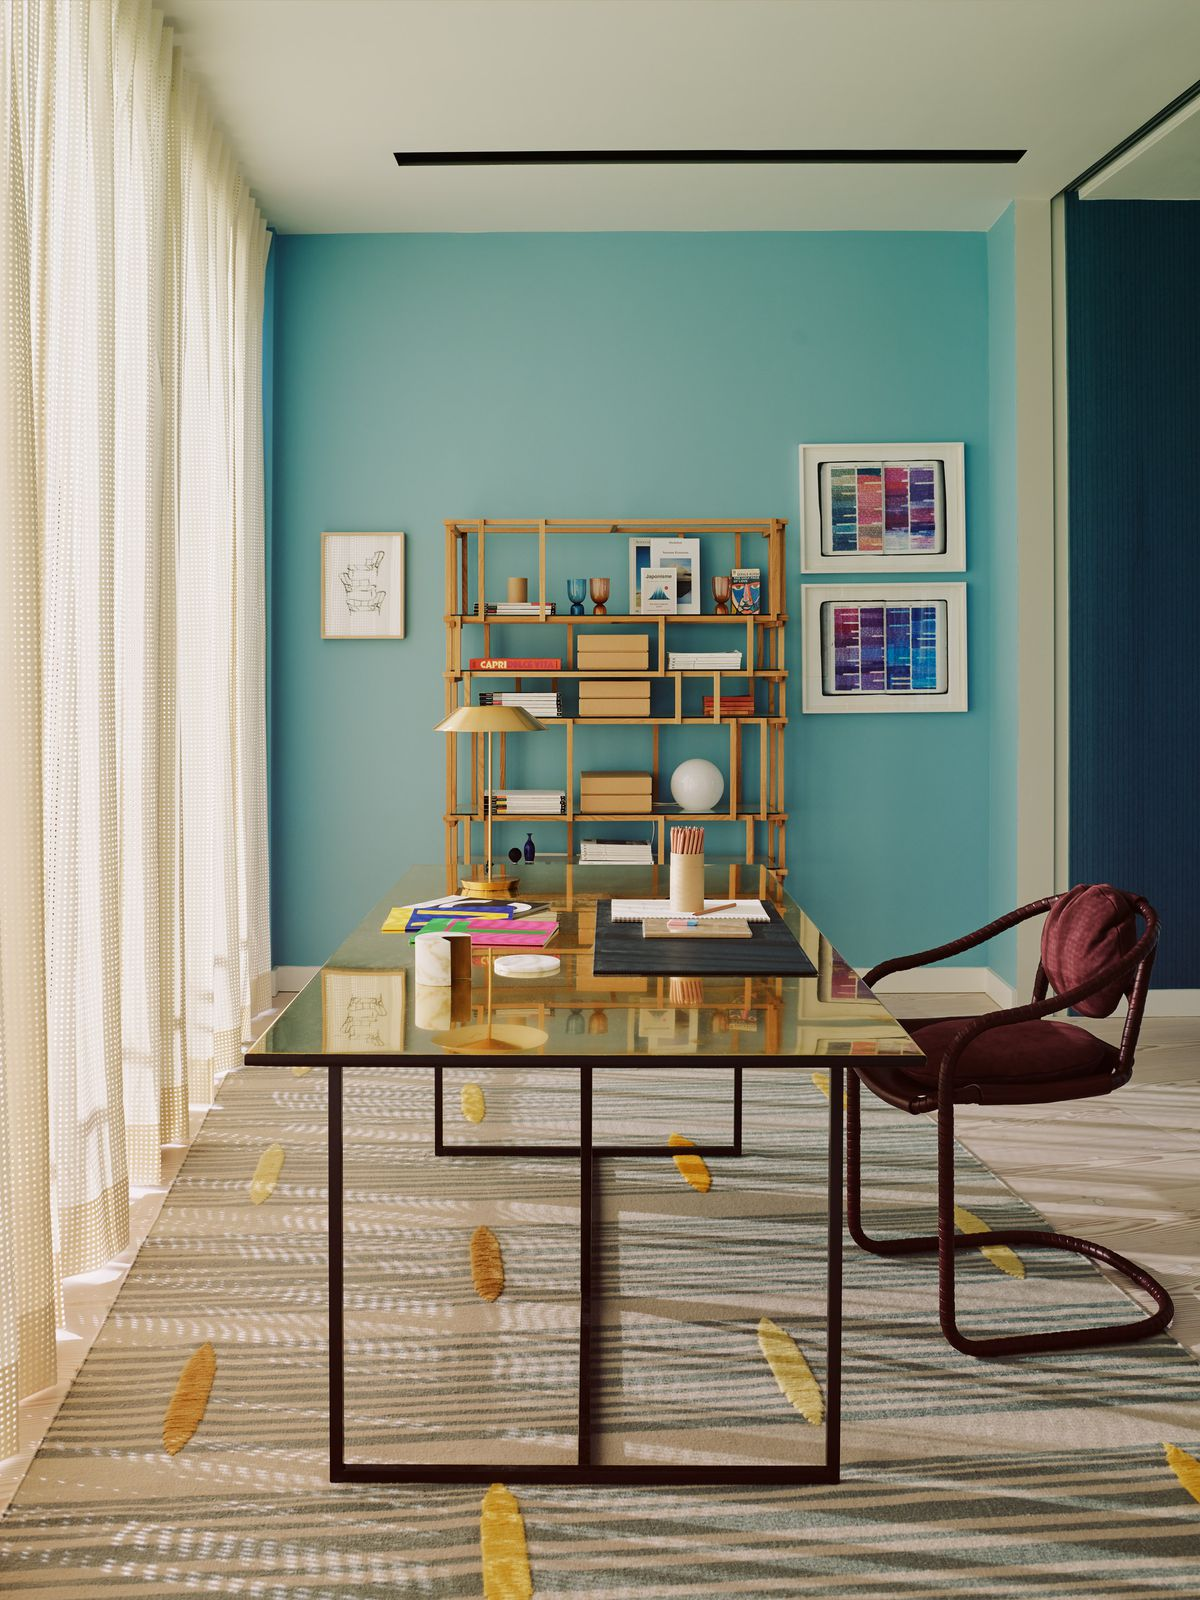 Home office with blue-green wall and sleek modern desk.